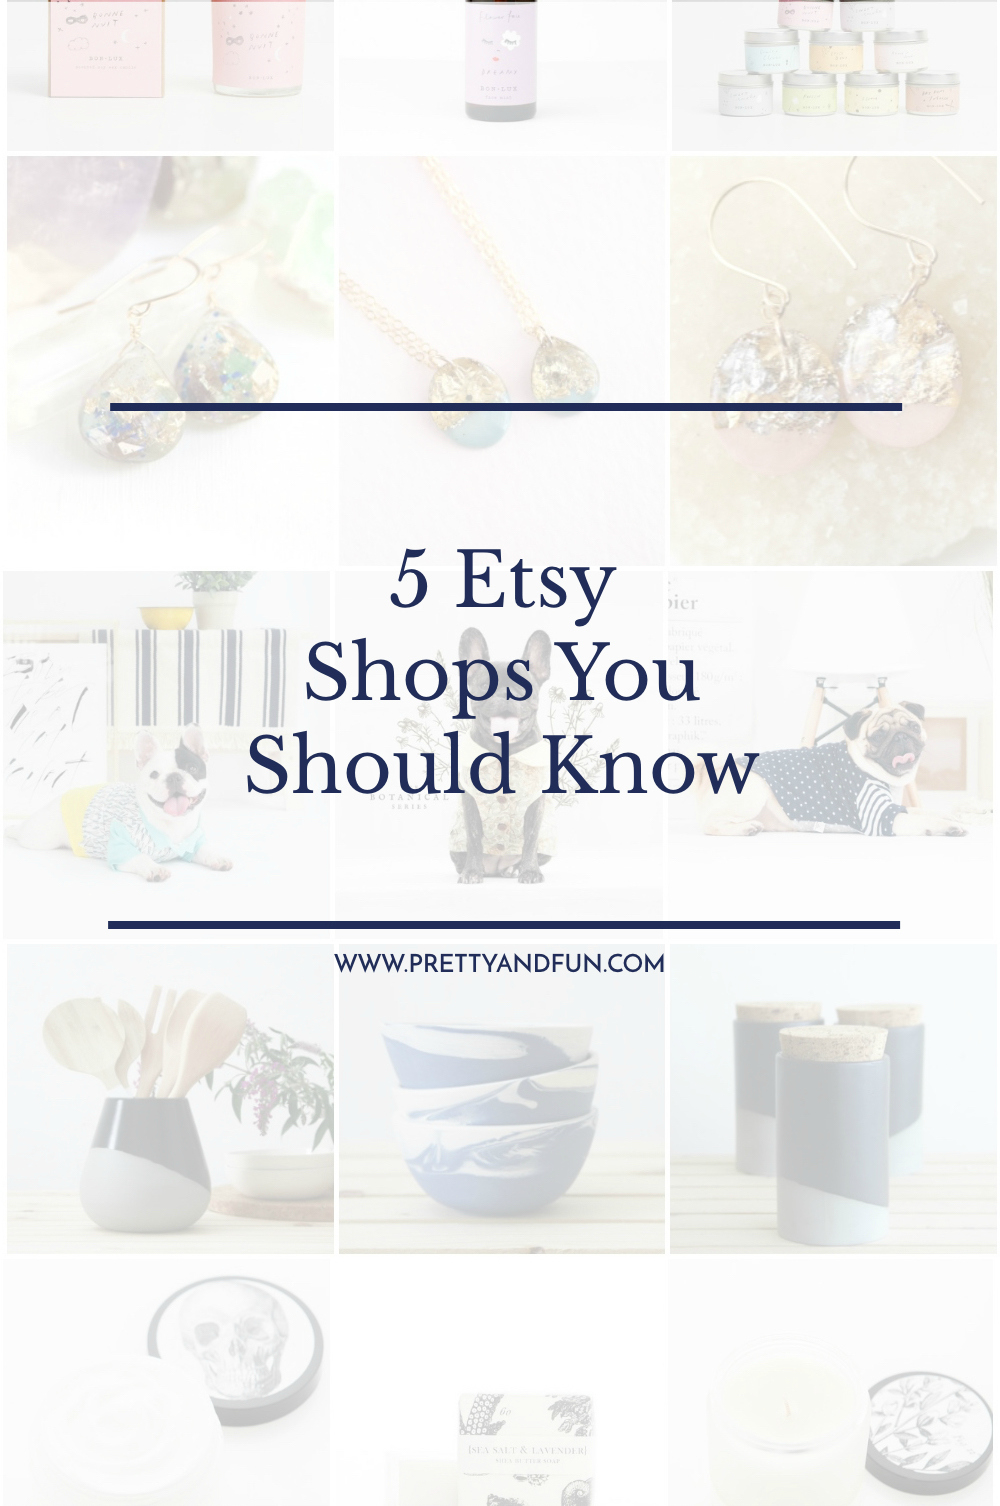 5 Etsy Shops You Should Know.